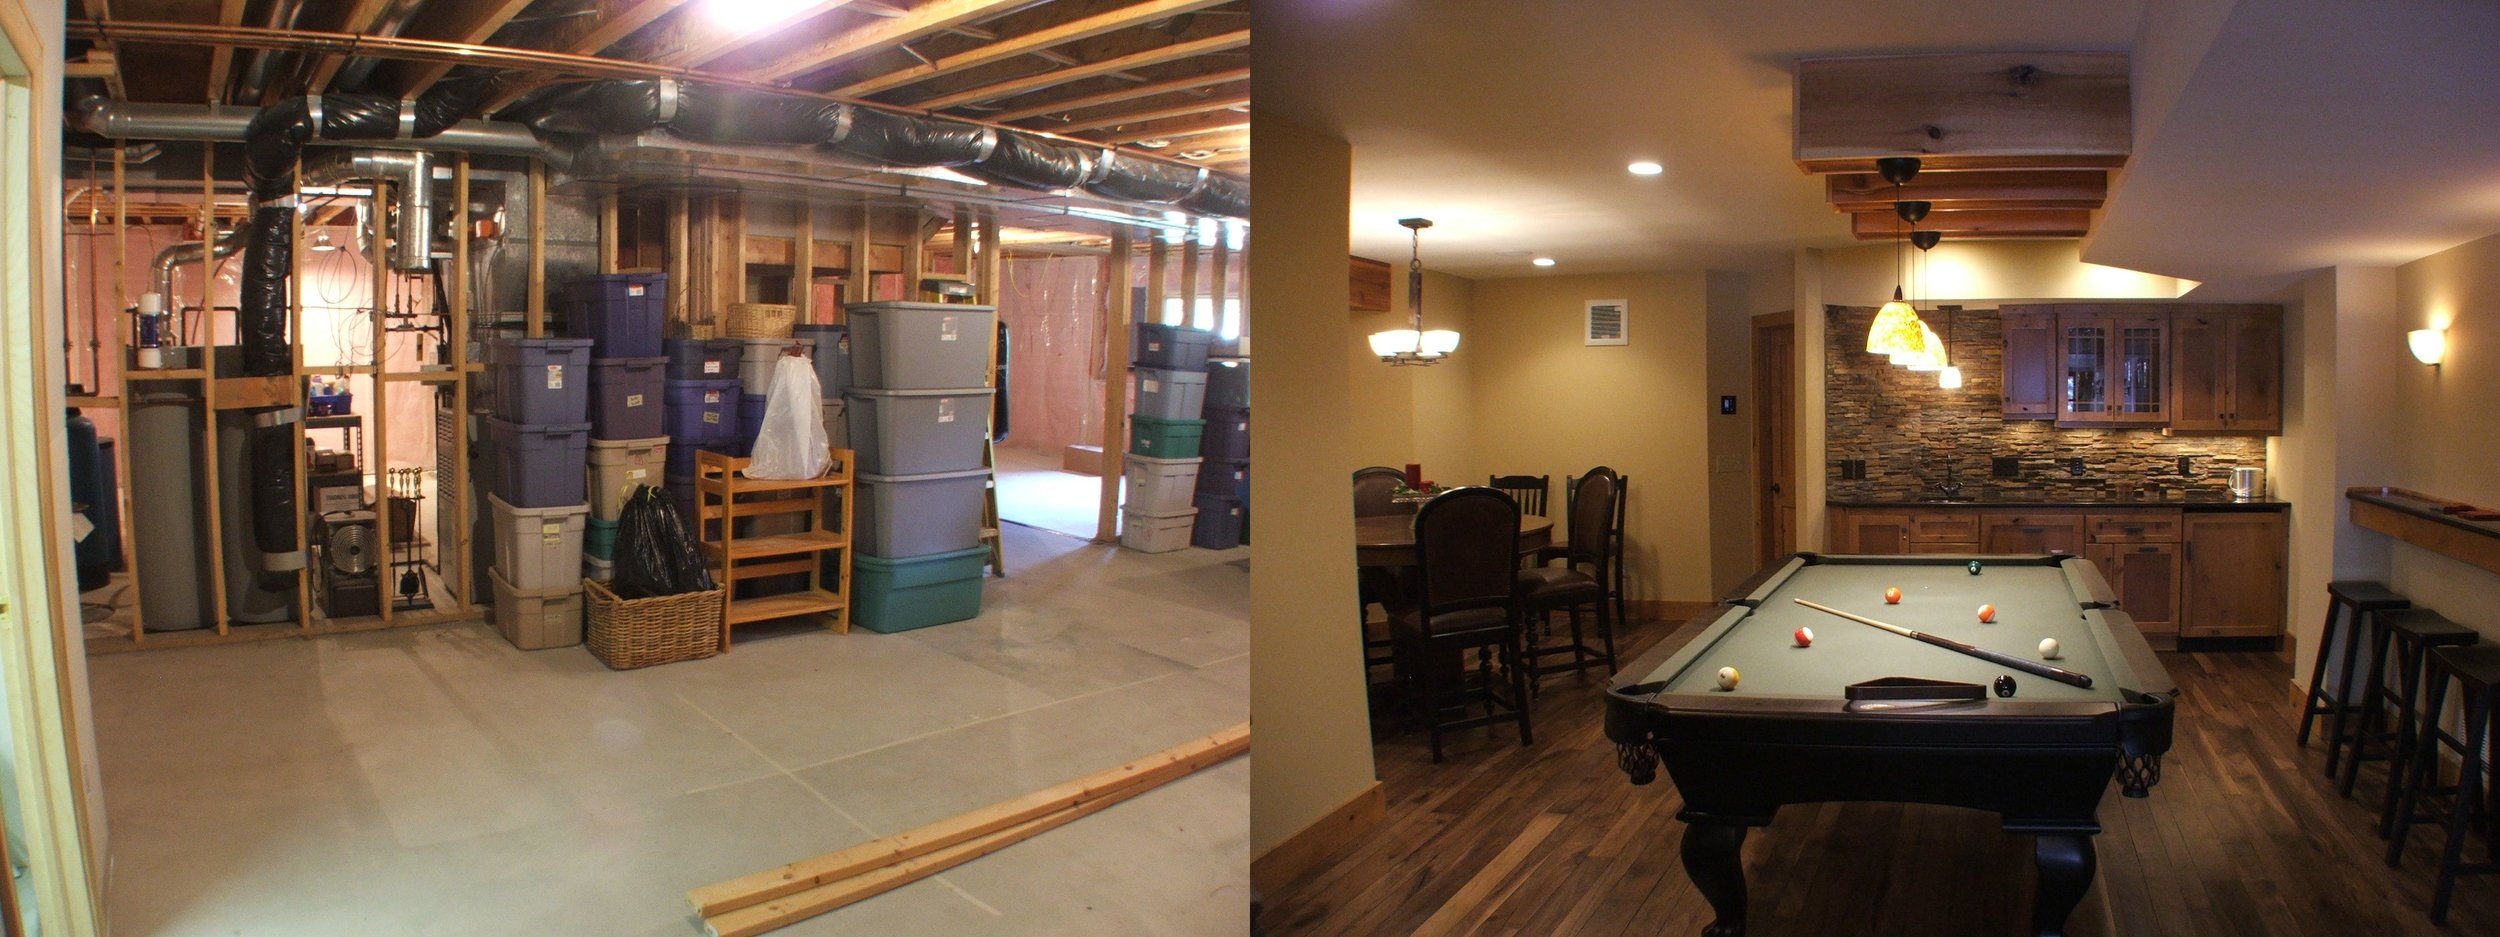 fantastic-basement-remodeling-plans-diagrams-on-interior-design-apartment-ideas_apartment-remodeling_apartment_apartment-interior-design-ideas-district-apartments-your-own-basement-studio-how-to-a-mod.jpg